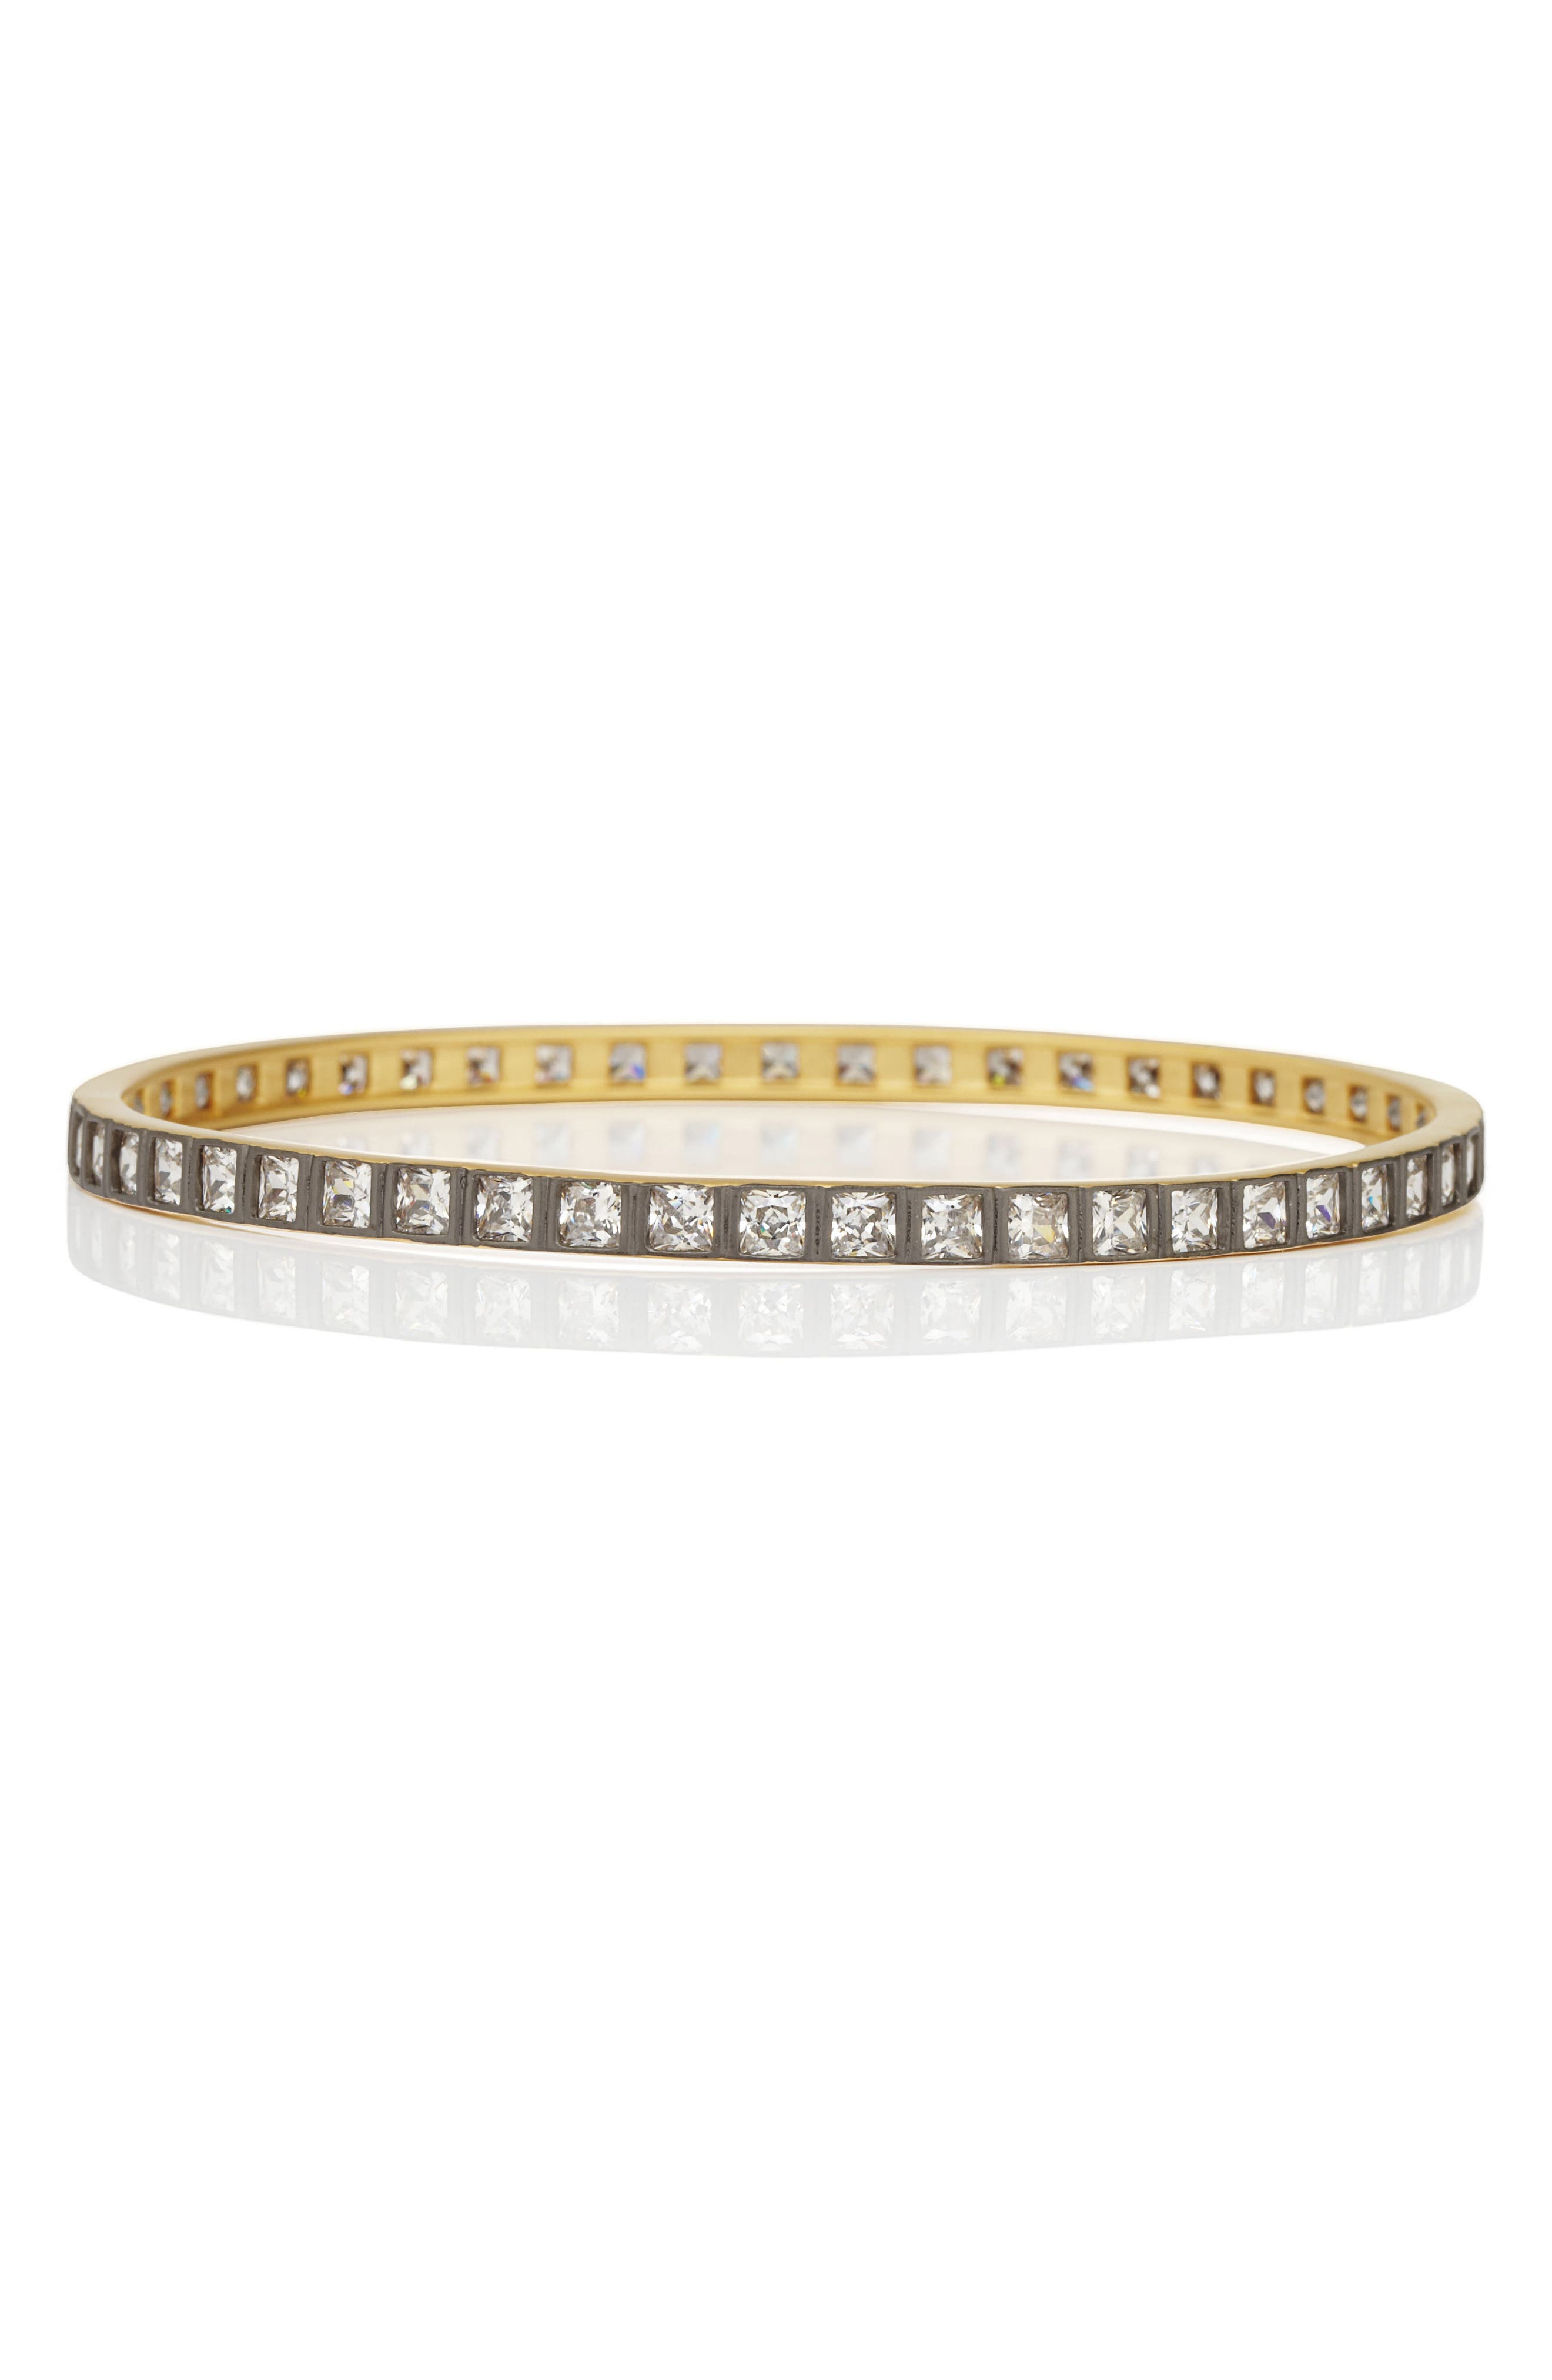 FREIDA ROTHMAN Square Radiance Cubic Zirconia Bangle (Special Purchase)